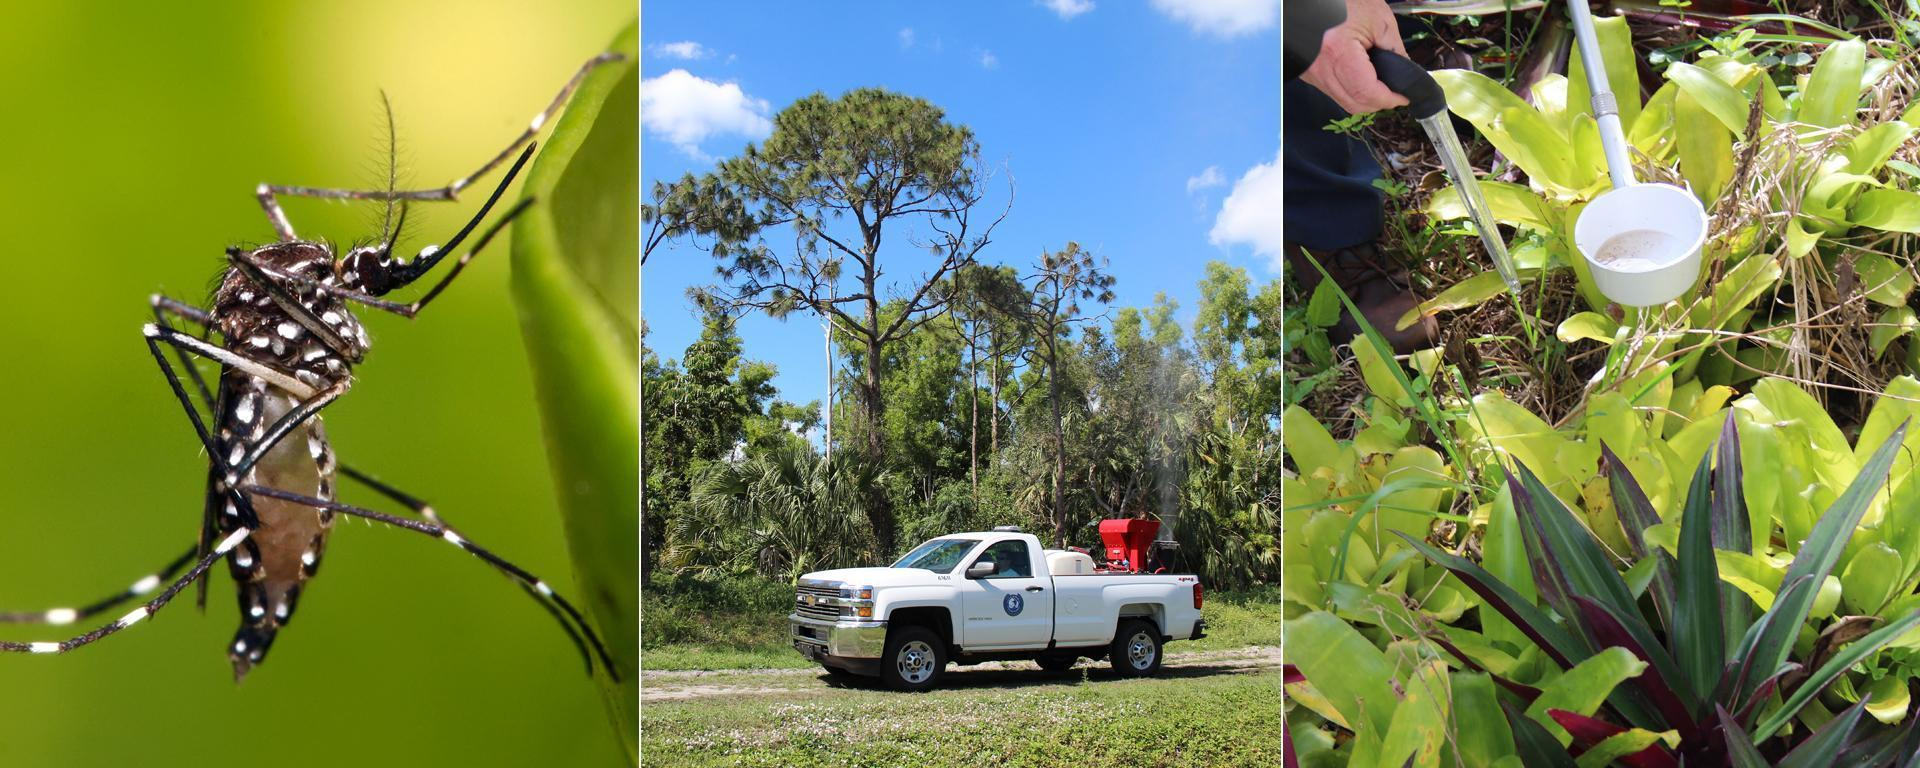 Aedes Aegypti and a Martin County Mosquito Control truck